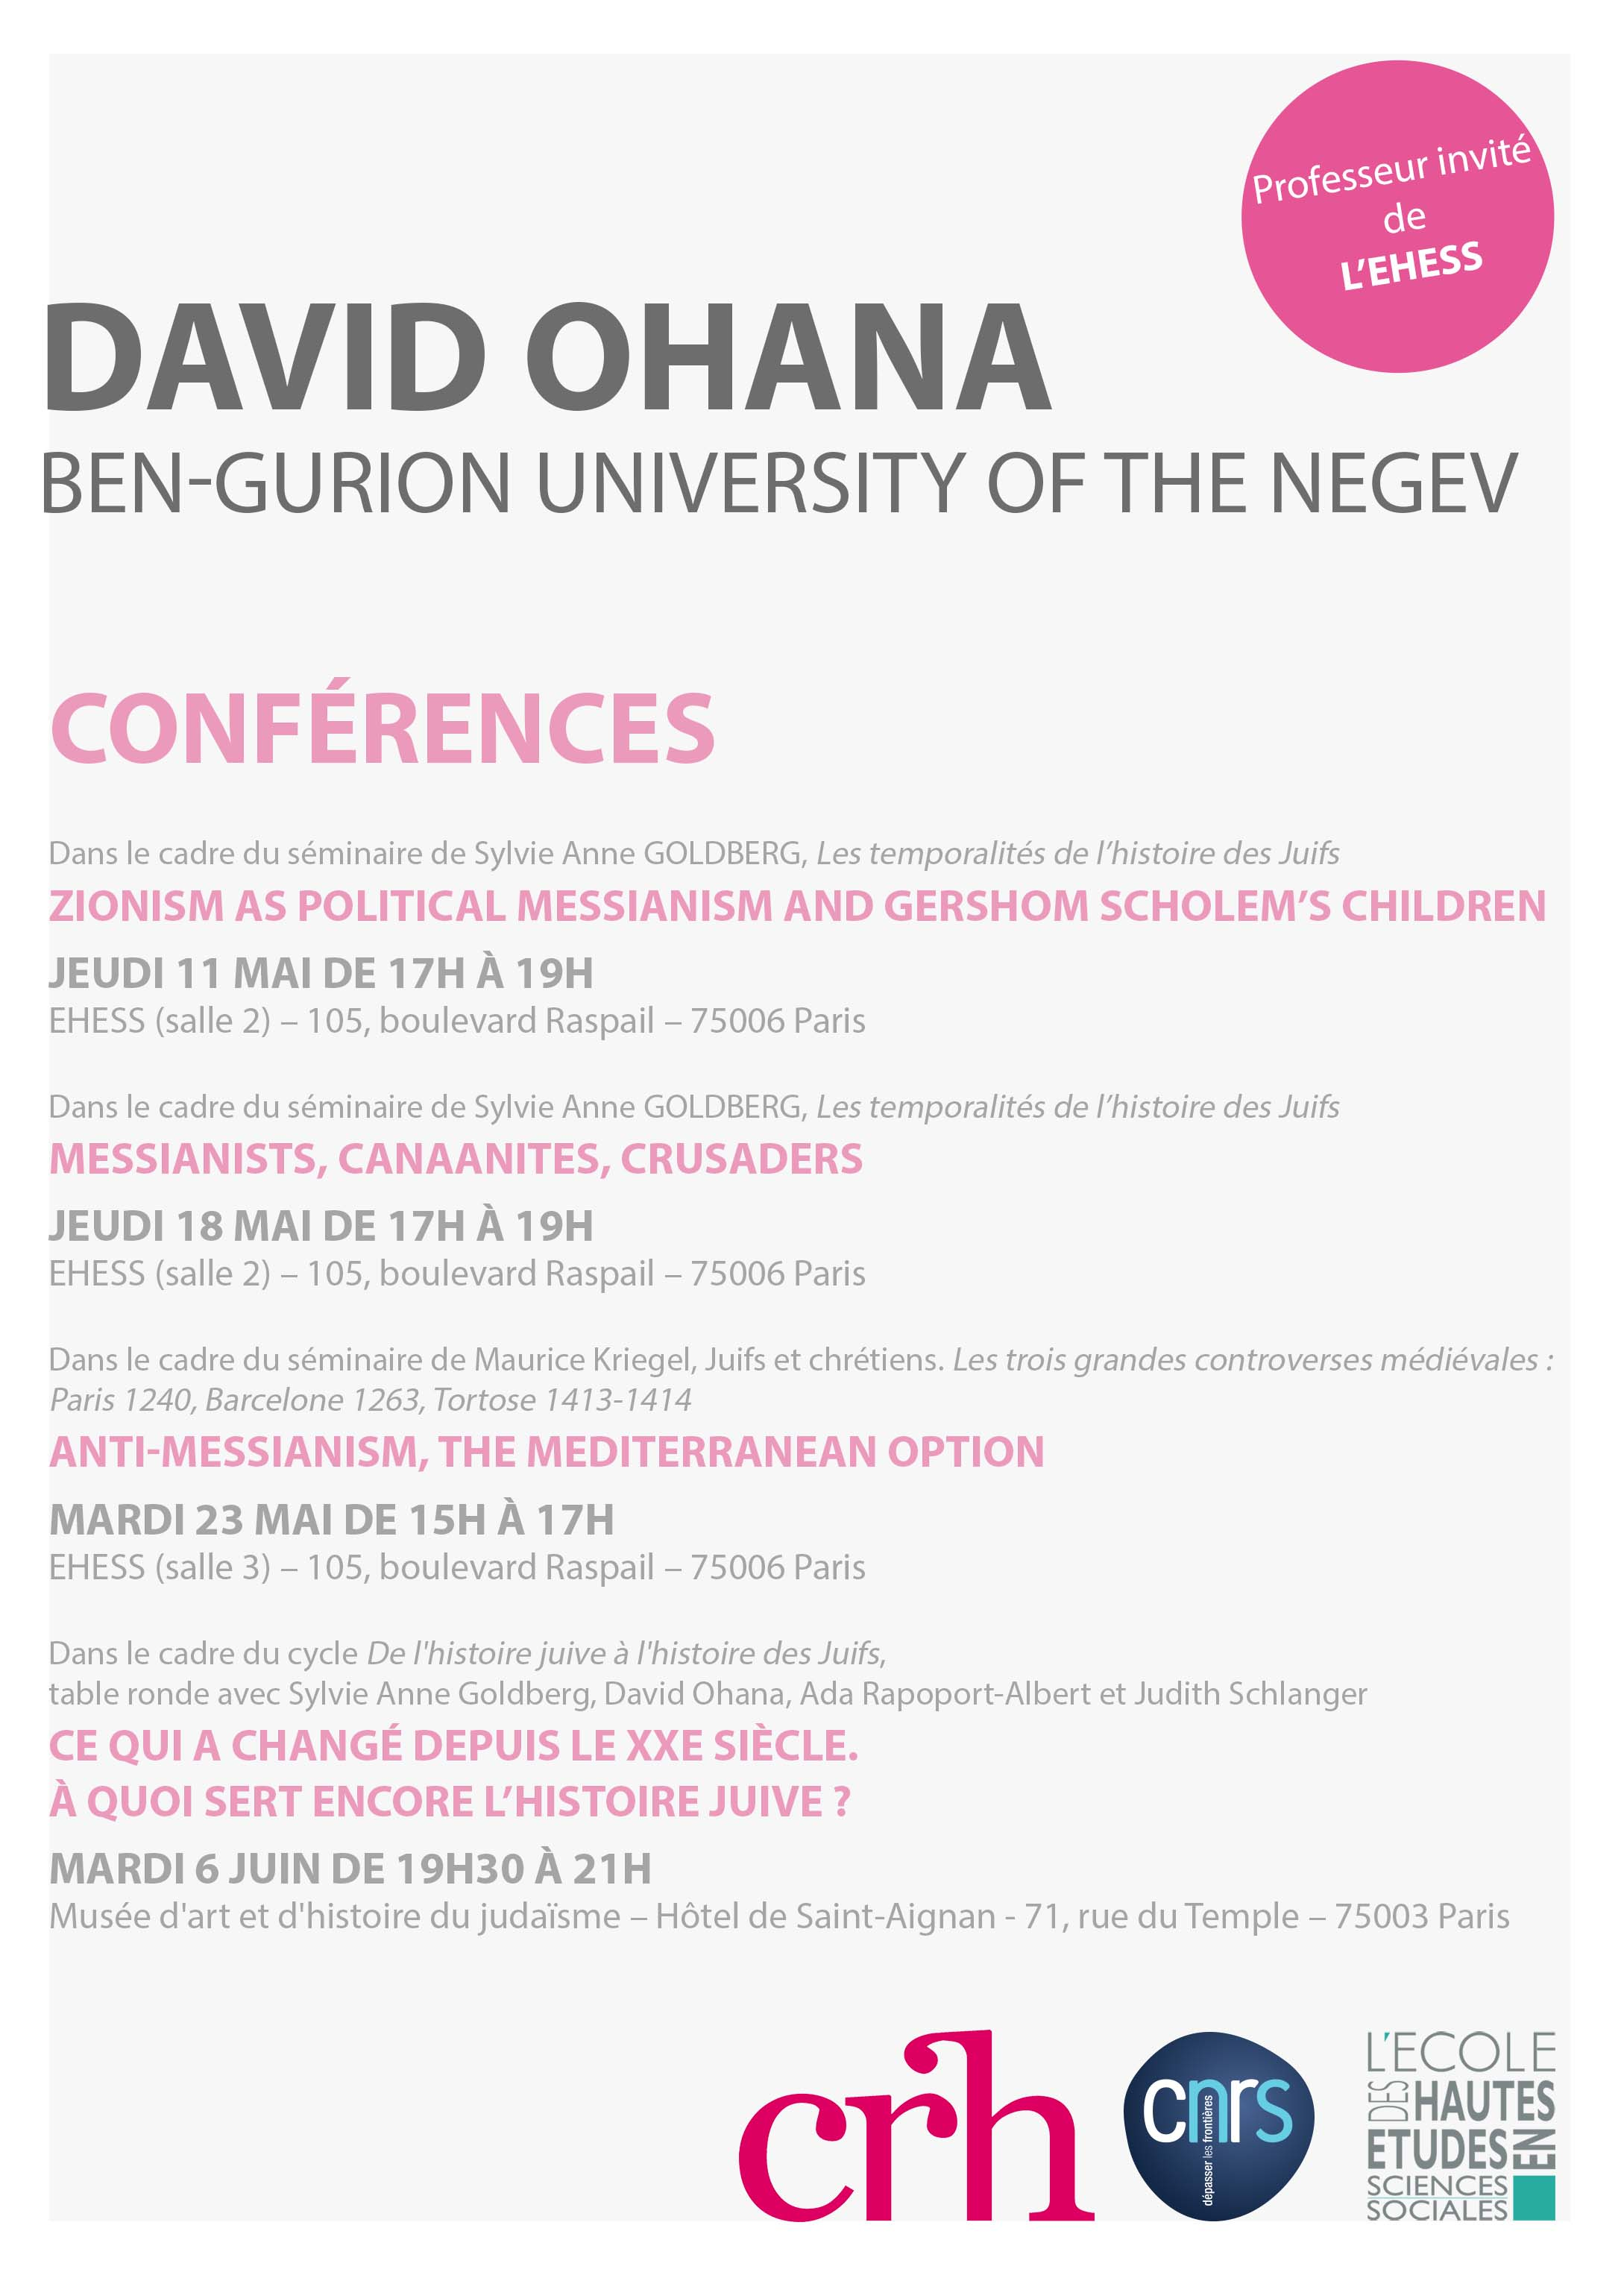 David Ohana (Ben-Gurion University of the Negev)